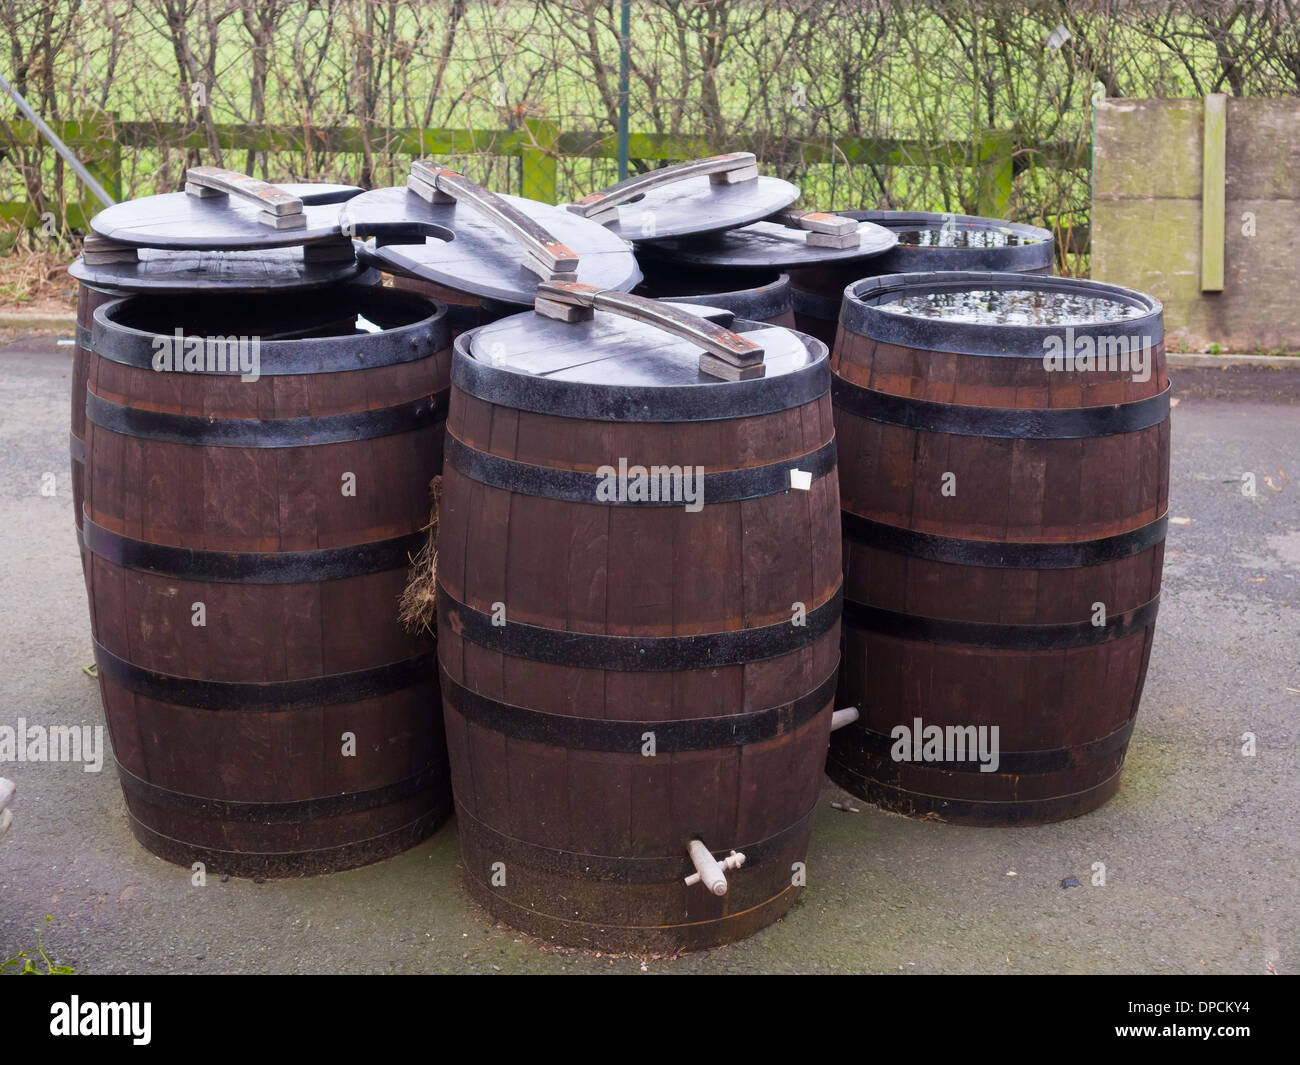 Traditional Wooden Barrels With Iron Hoops For Sale As Water Butts